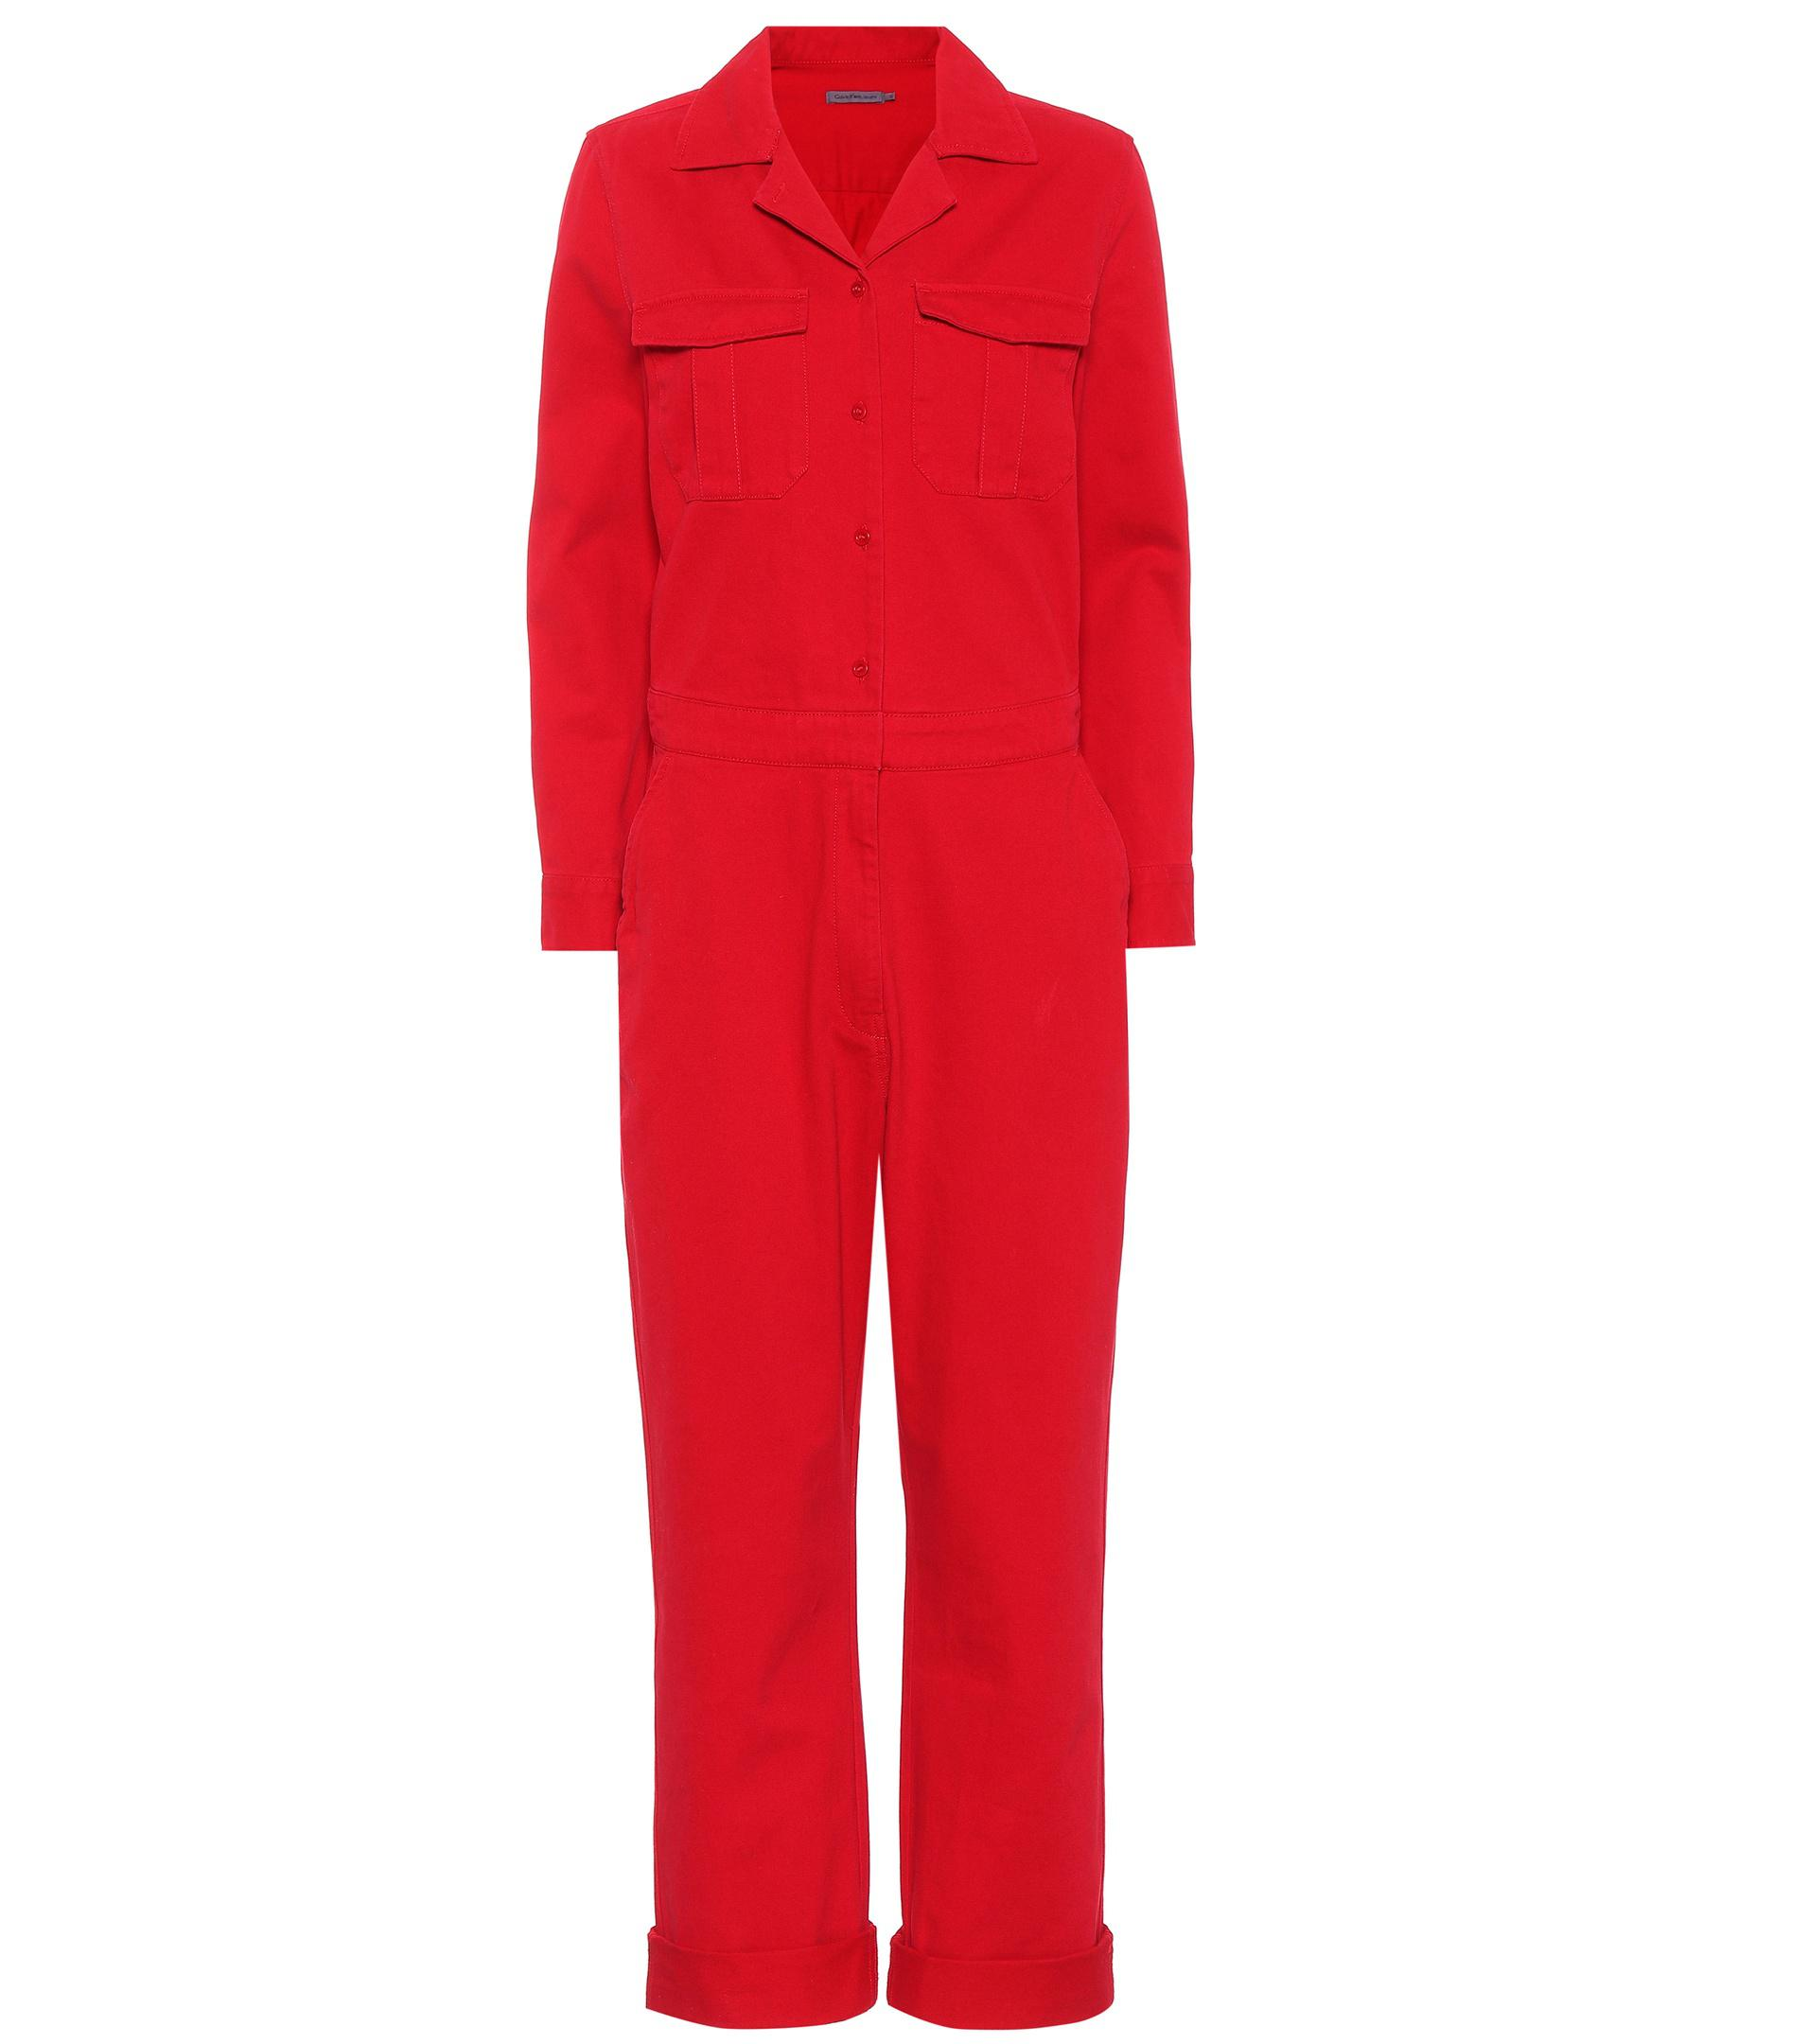 0df7e850e48 Lyst - Calvin Klein Collared Cotton Jumpsuit in Red